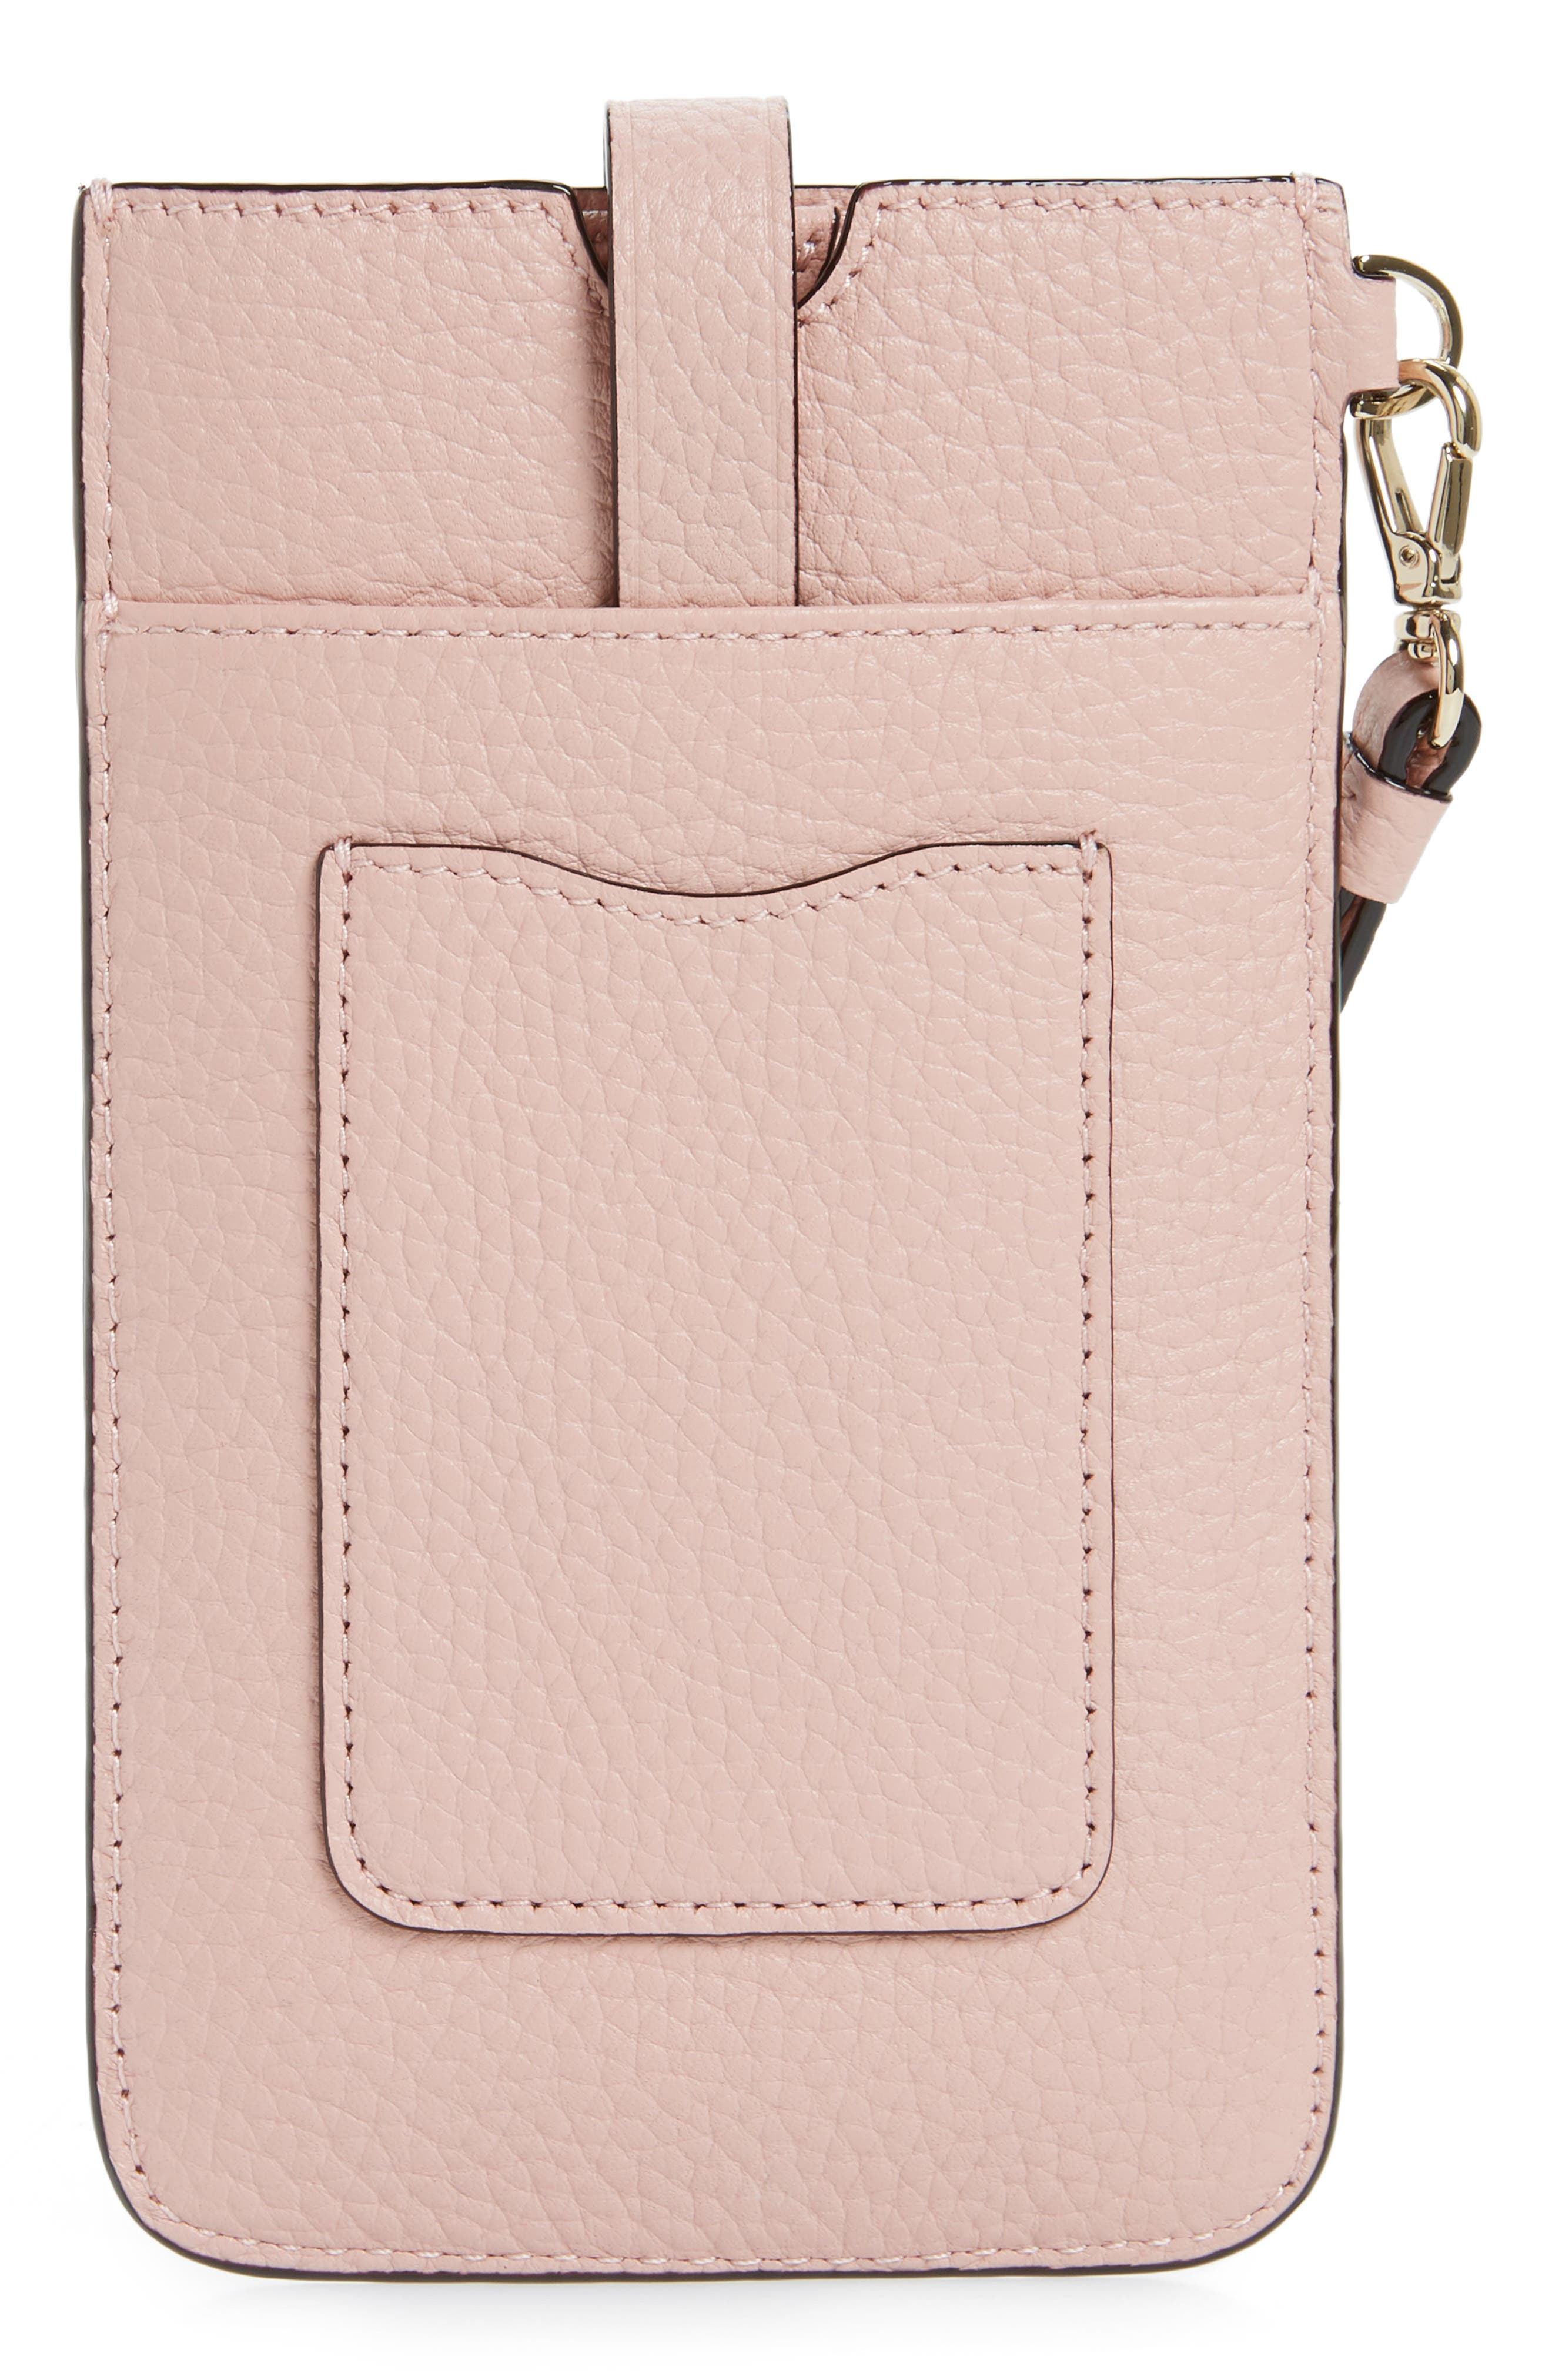 leather smartphone wristlet,                             Alternate thumbnail 2, color,                             Rosy Cheeks